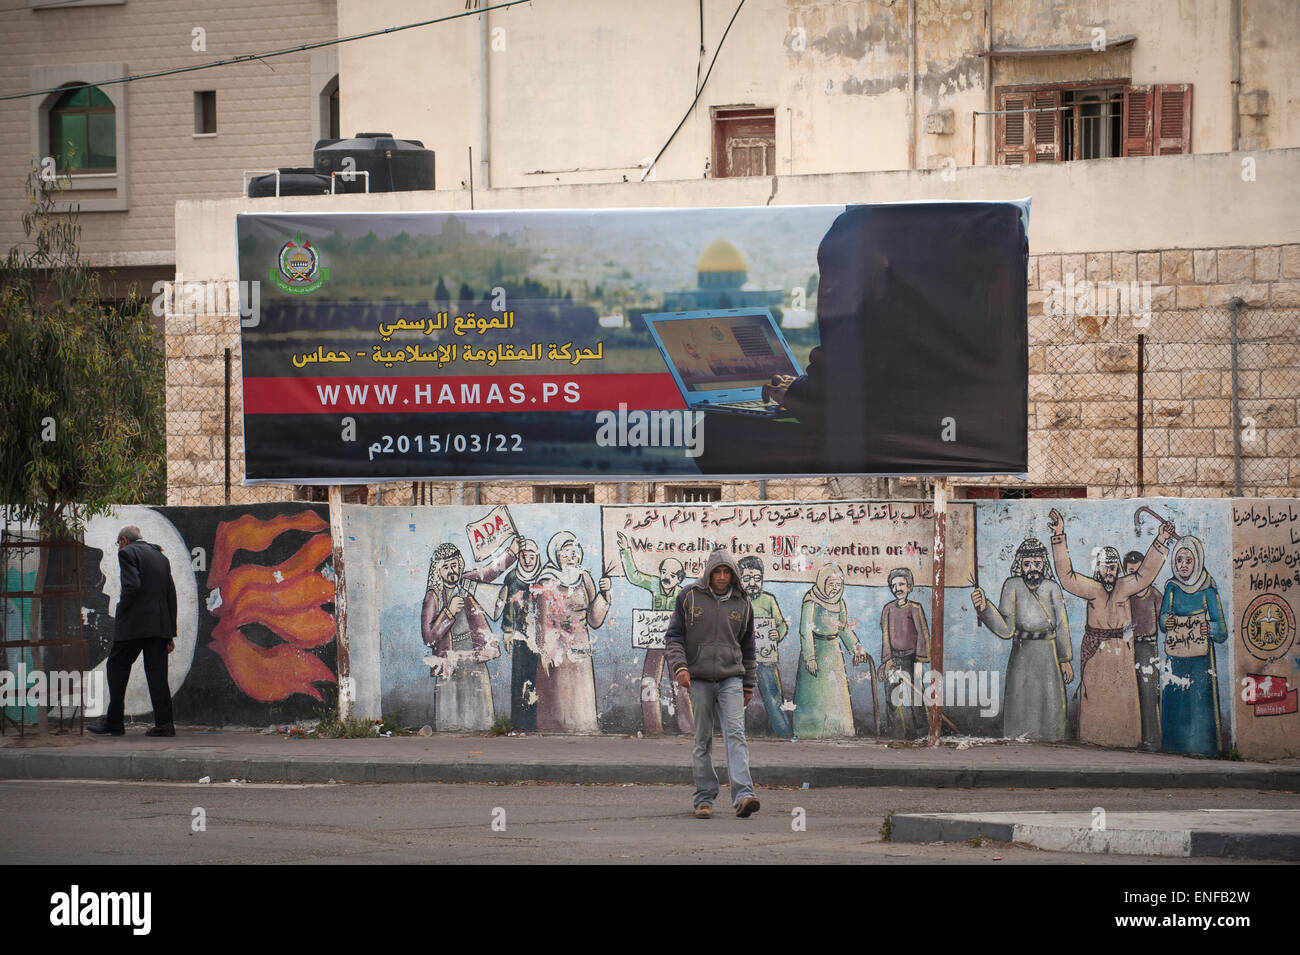 A poster in Gaza City advertising the  Hamas website address to Palestinians. - Stock Image